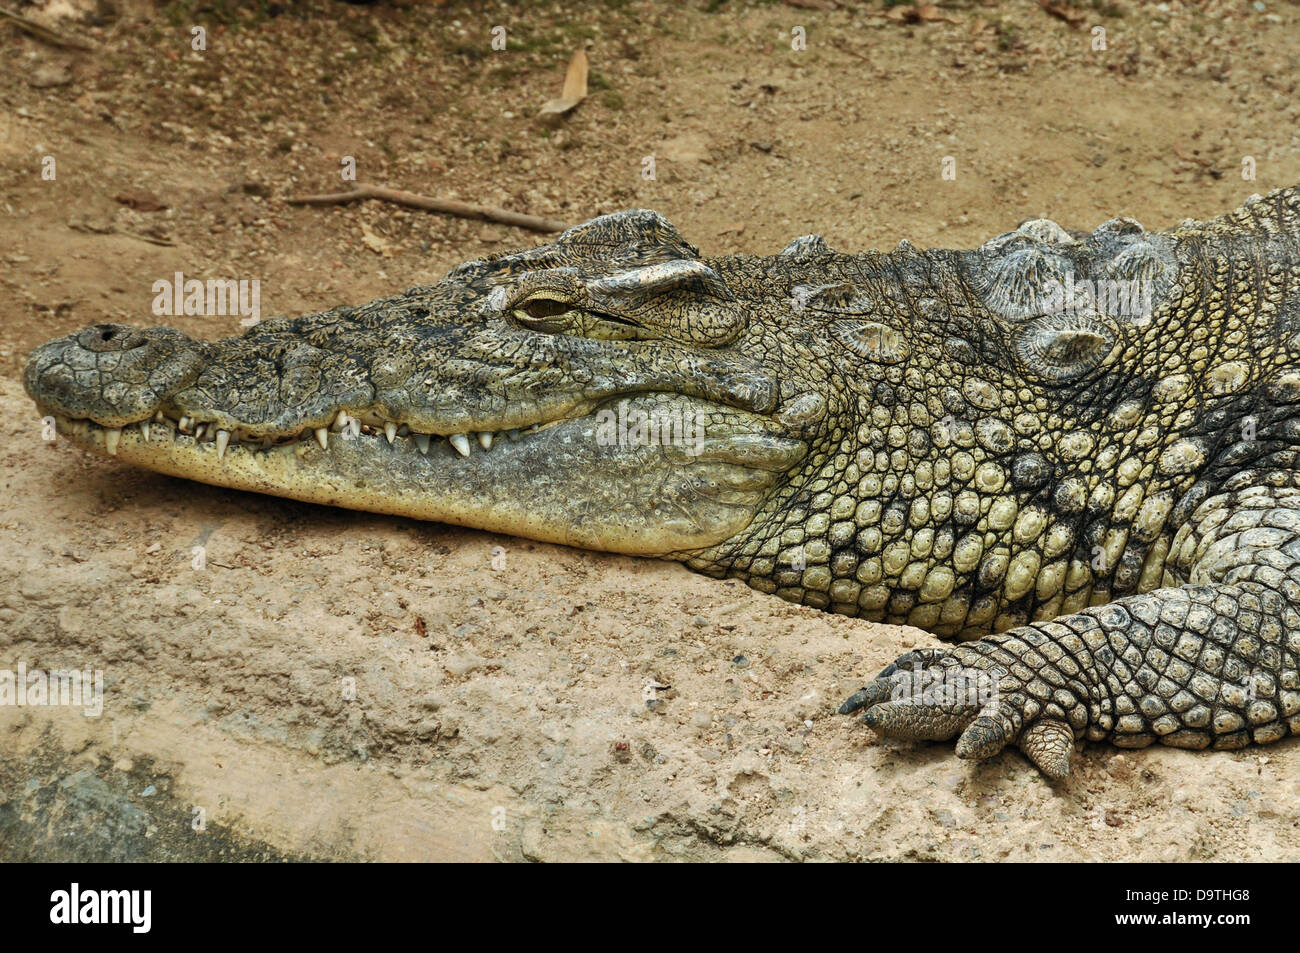 Nile crocodile one of the largest reptiles in the world. Wild animal background. - Stock Image